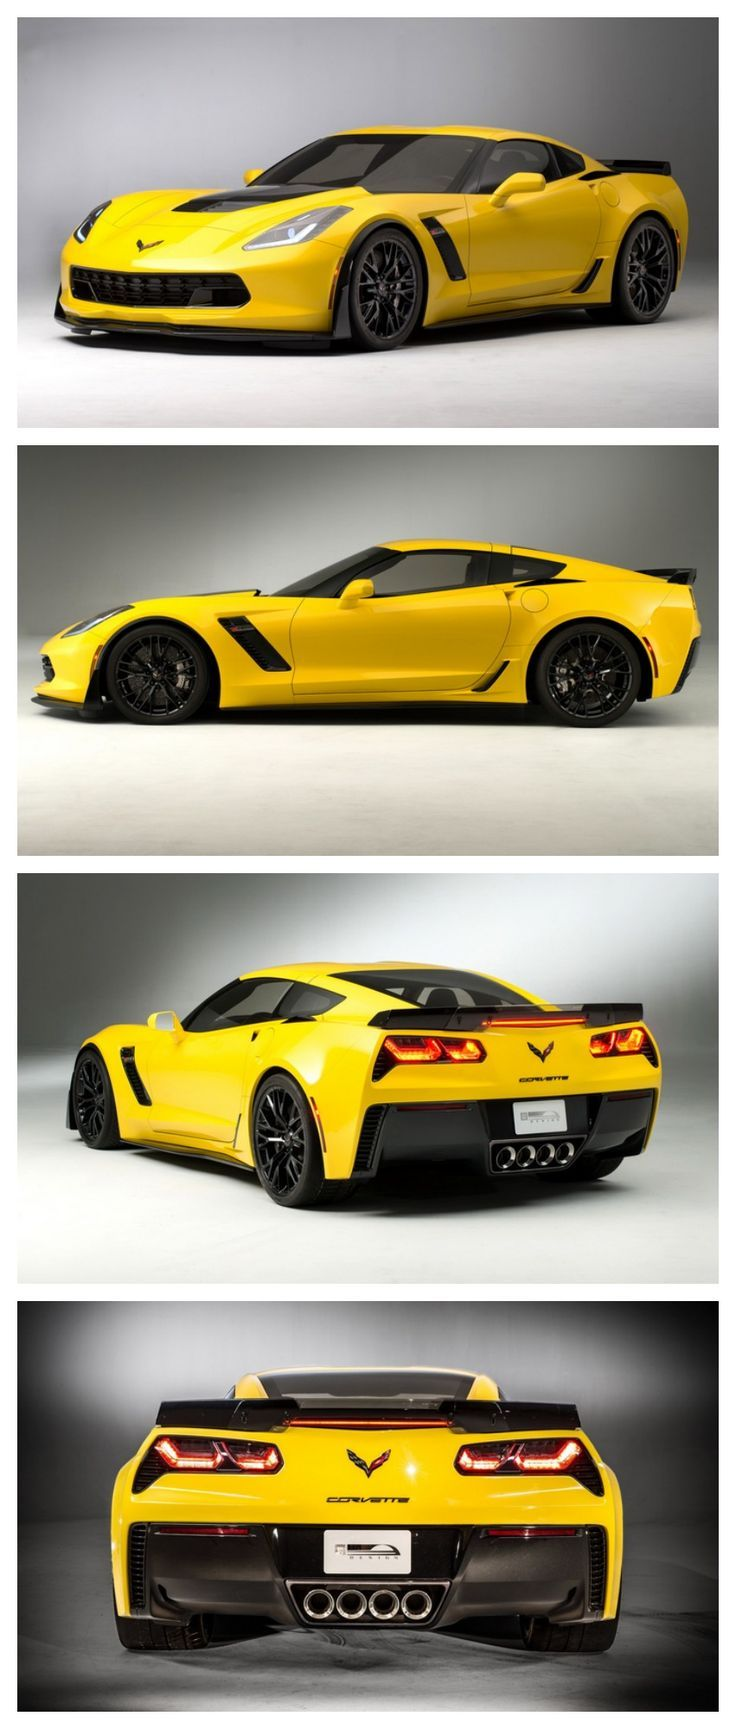 Yea Baby! Supercharged Chevy C7 Stingray #AutoAwesome Want !!! #Shitapoorkidsays